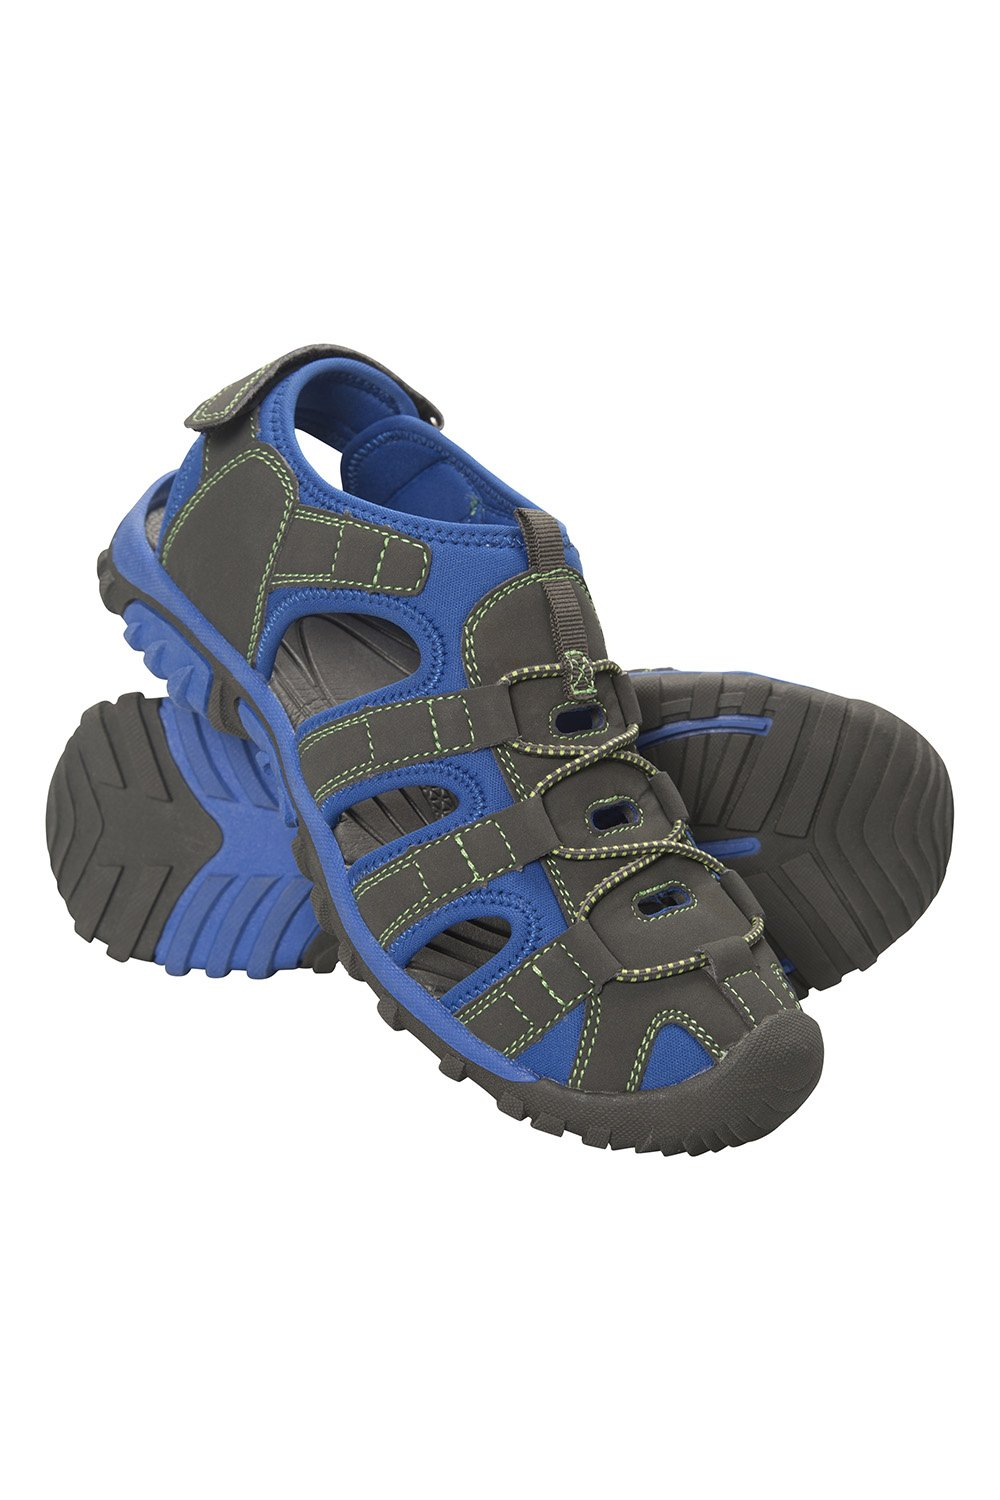 Mountain Warehouse Bay Kids Shandals - Childrens Summer Shoes Blue 1 Child US